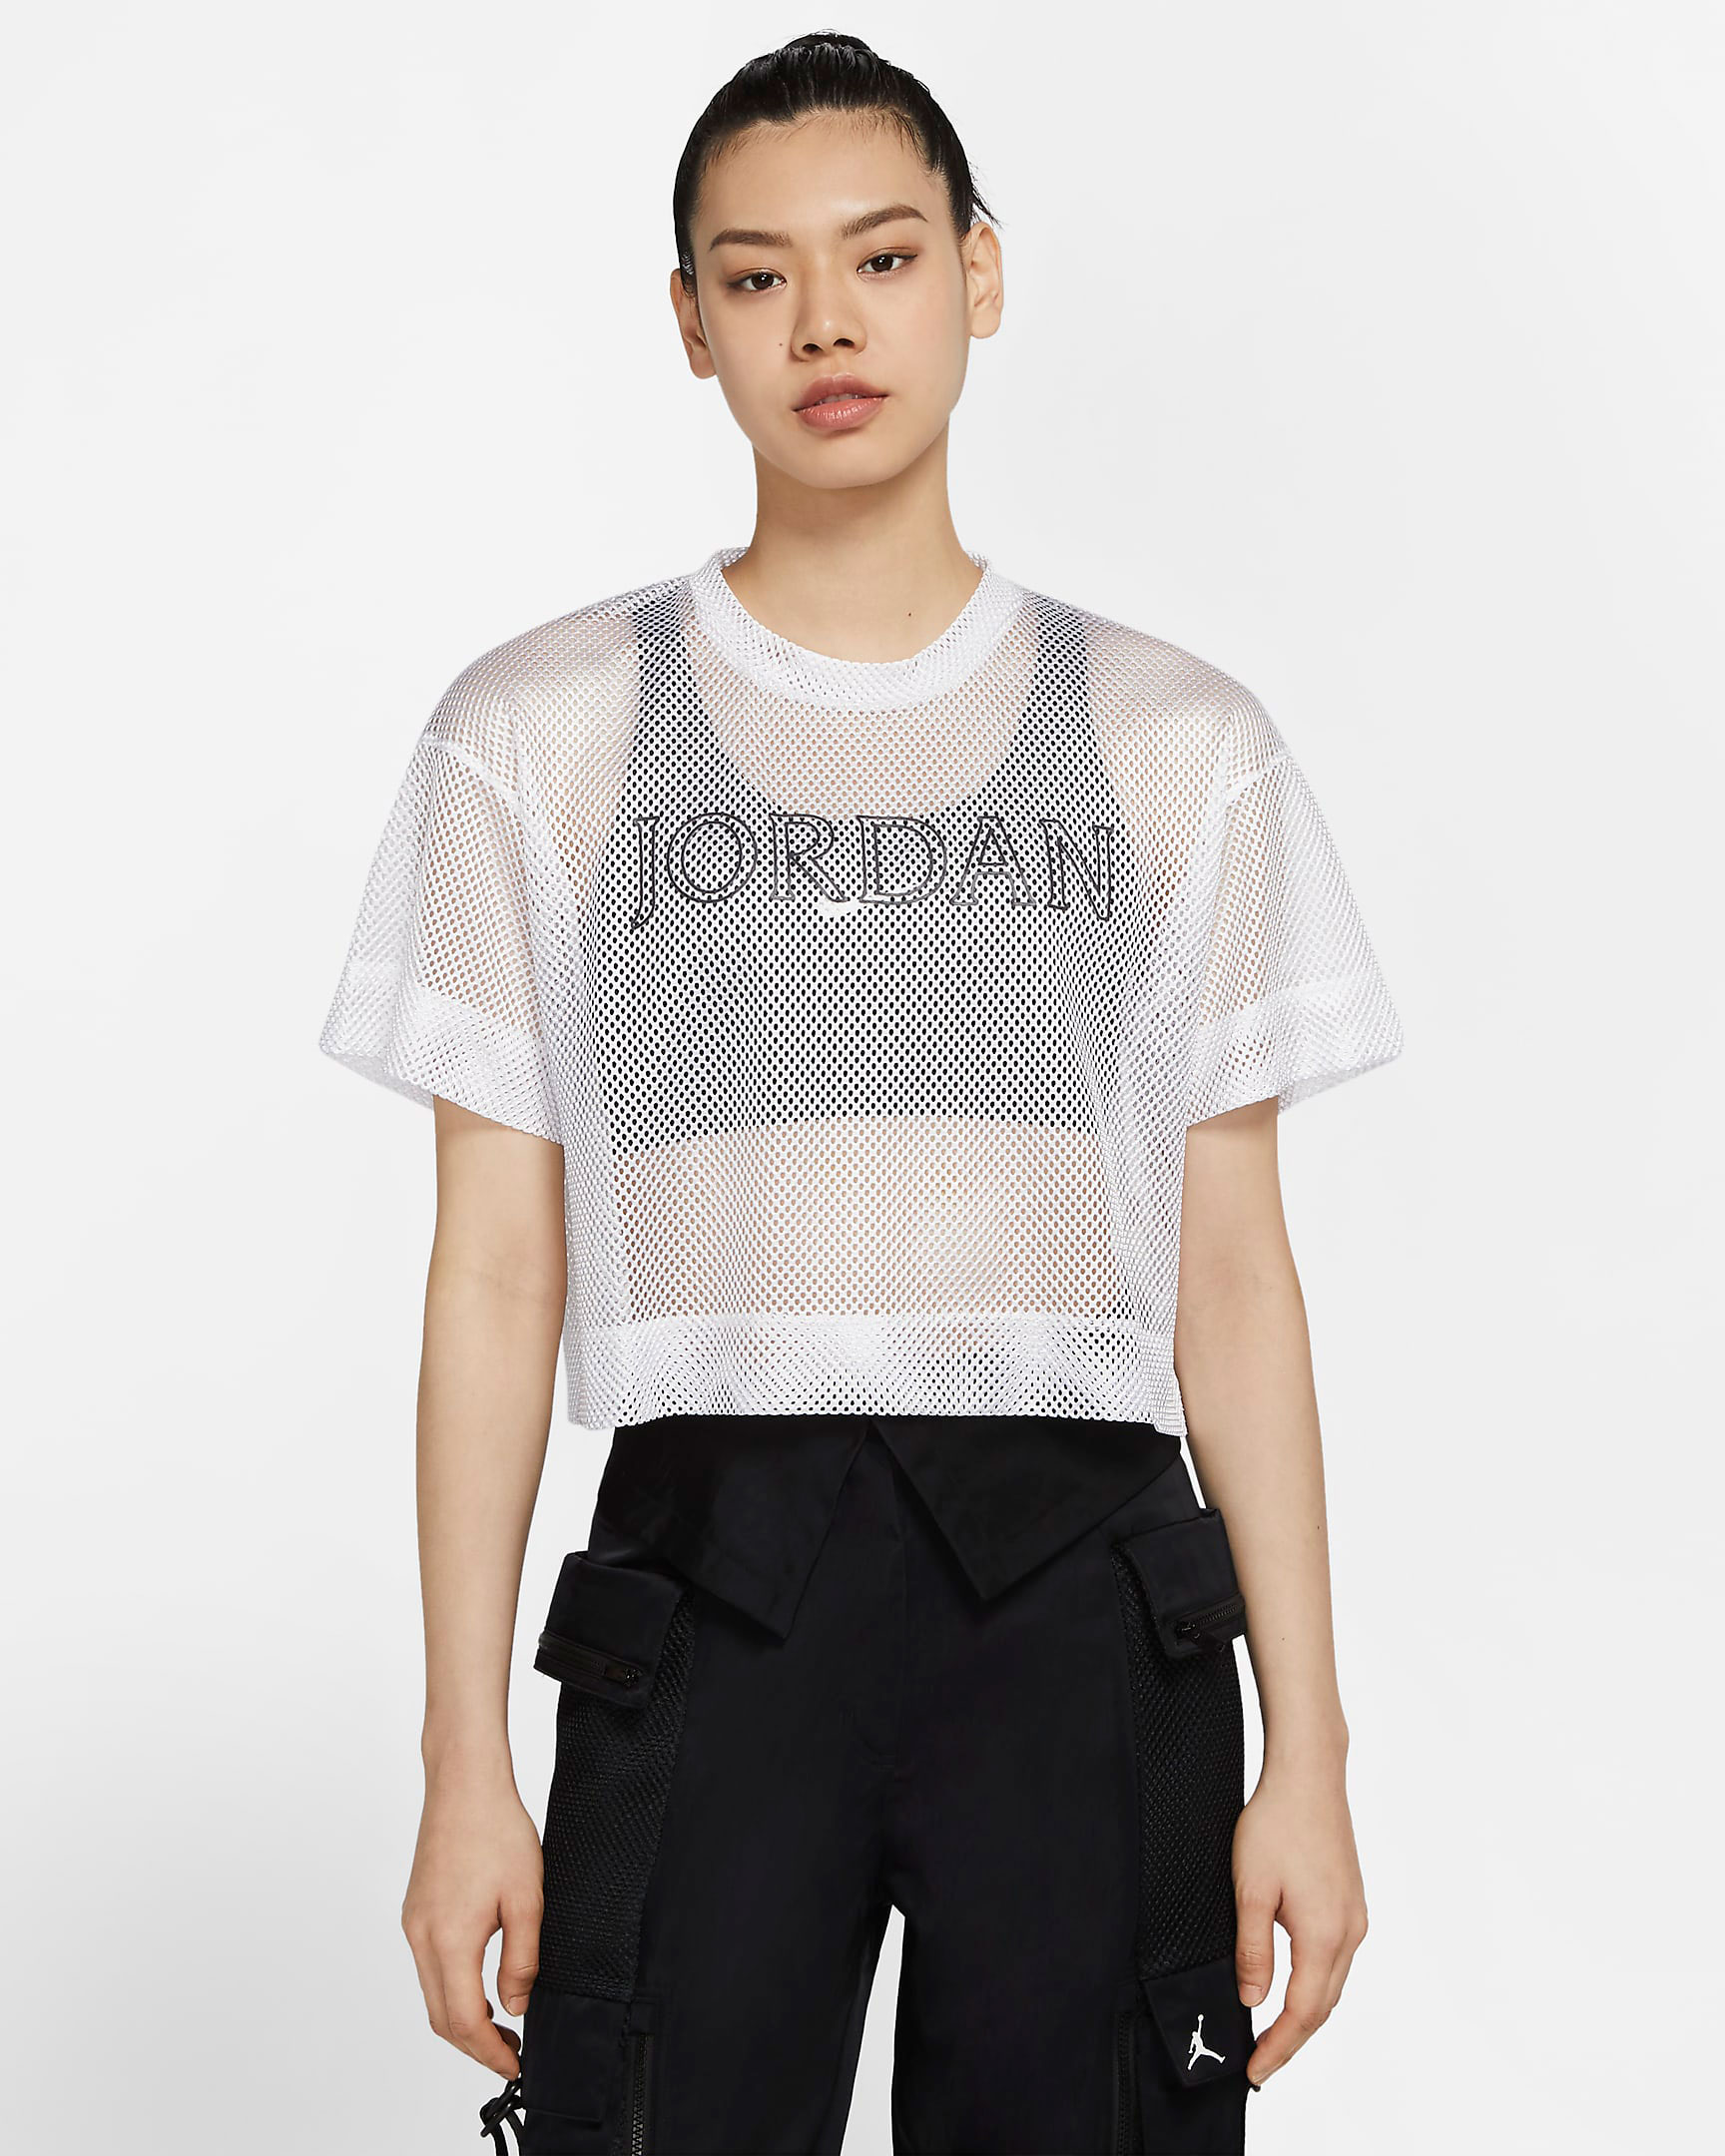 jordan-womens-utility-mesh-top-white